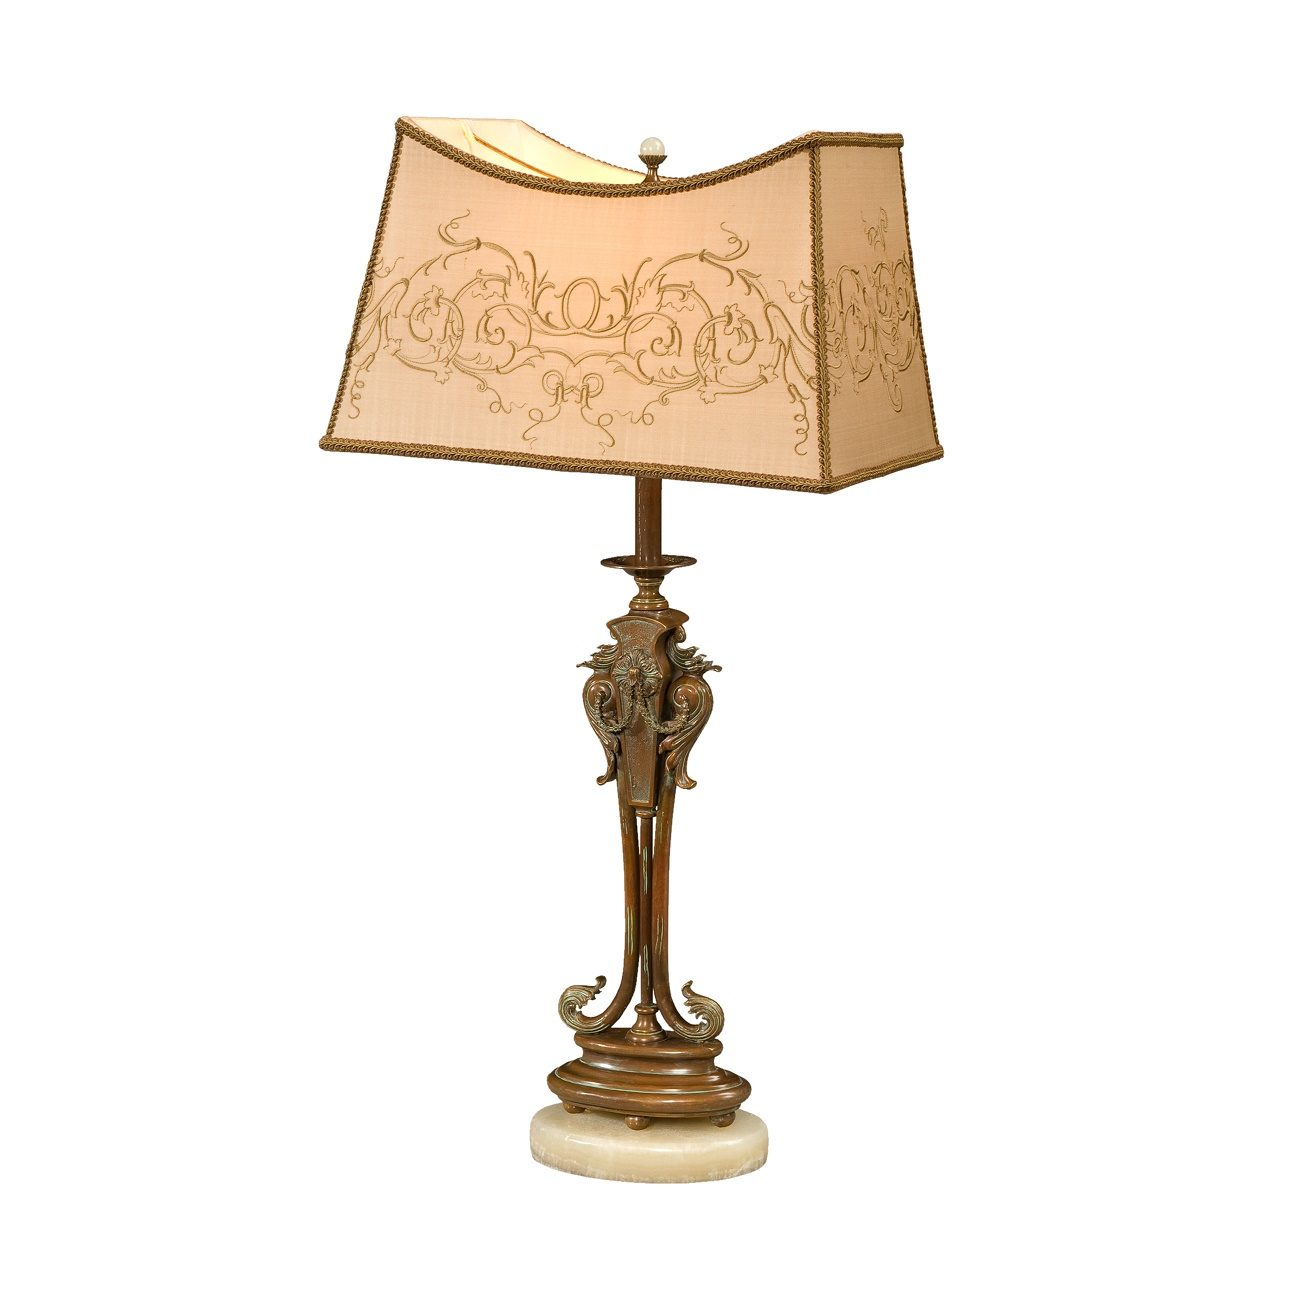 Theodore Alexander A Romantic Treat Table Lamp Brooklyn, New York - Accentuations Brand